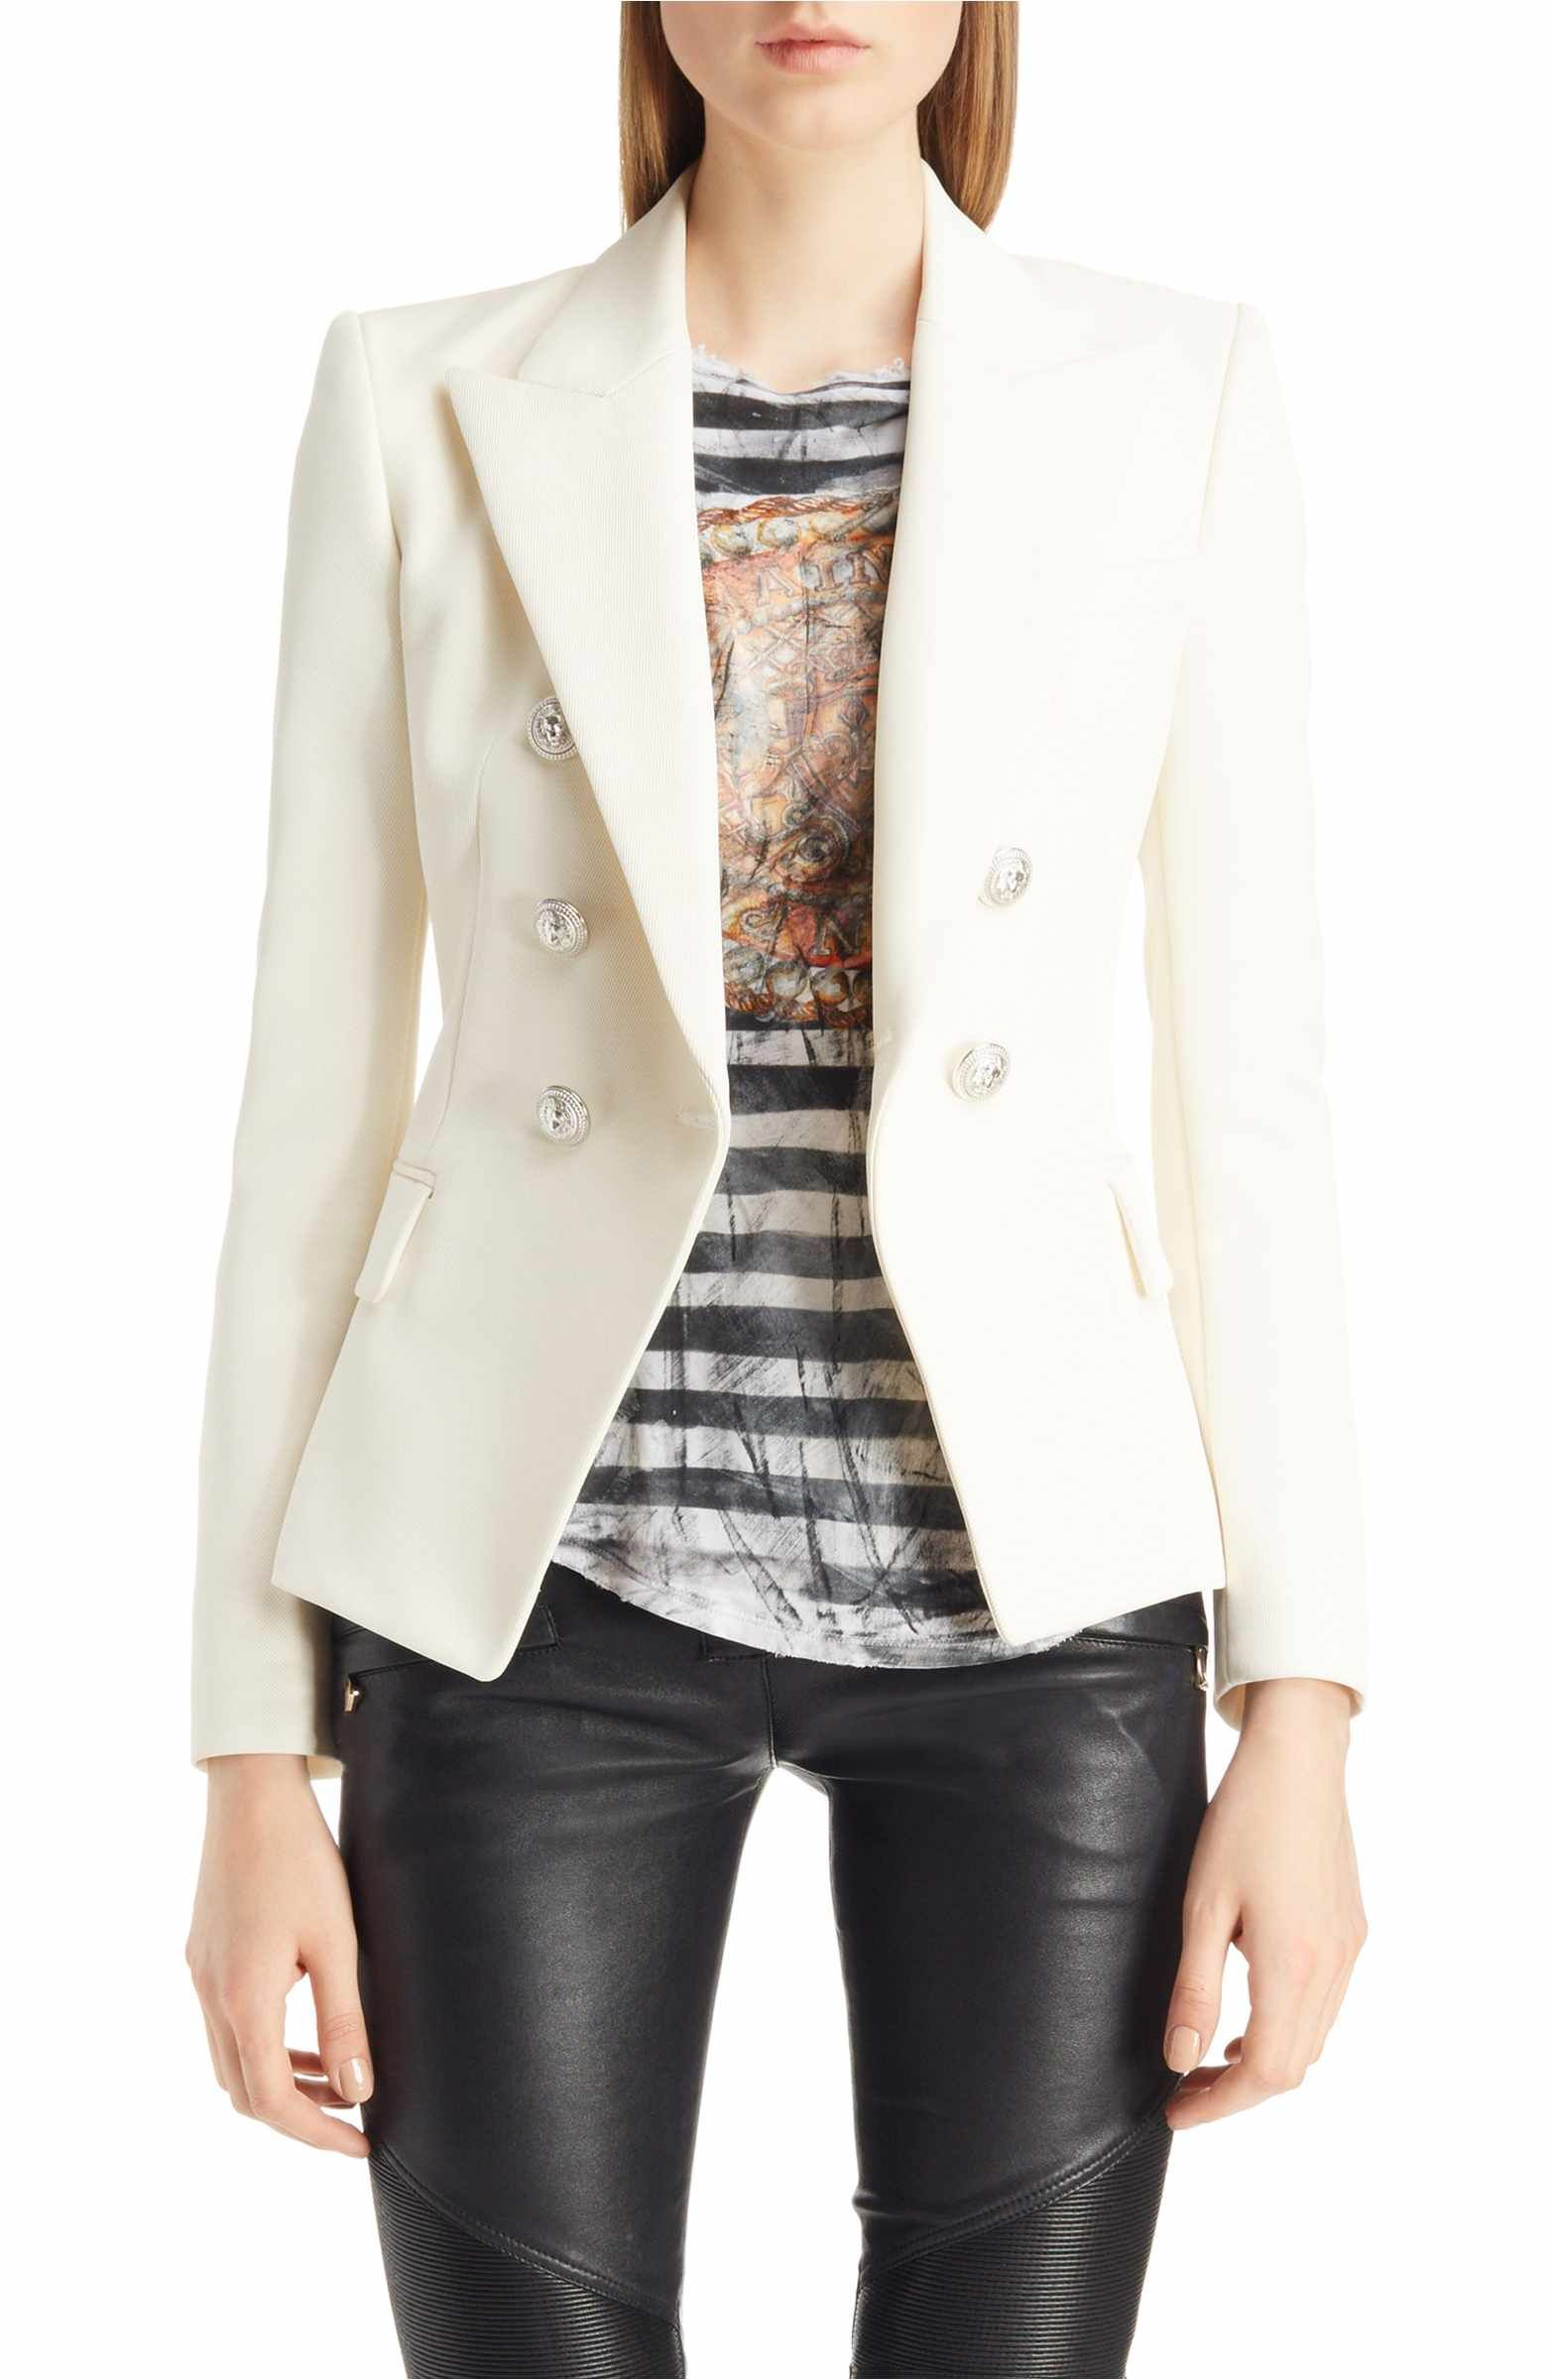 015f6714 Main Image - Balmain Double Breasted Wool Blend Blazer | Wantable ...